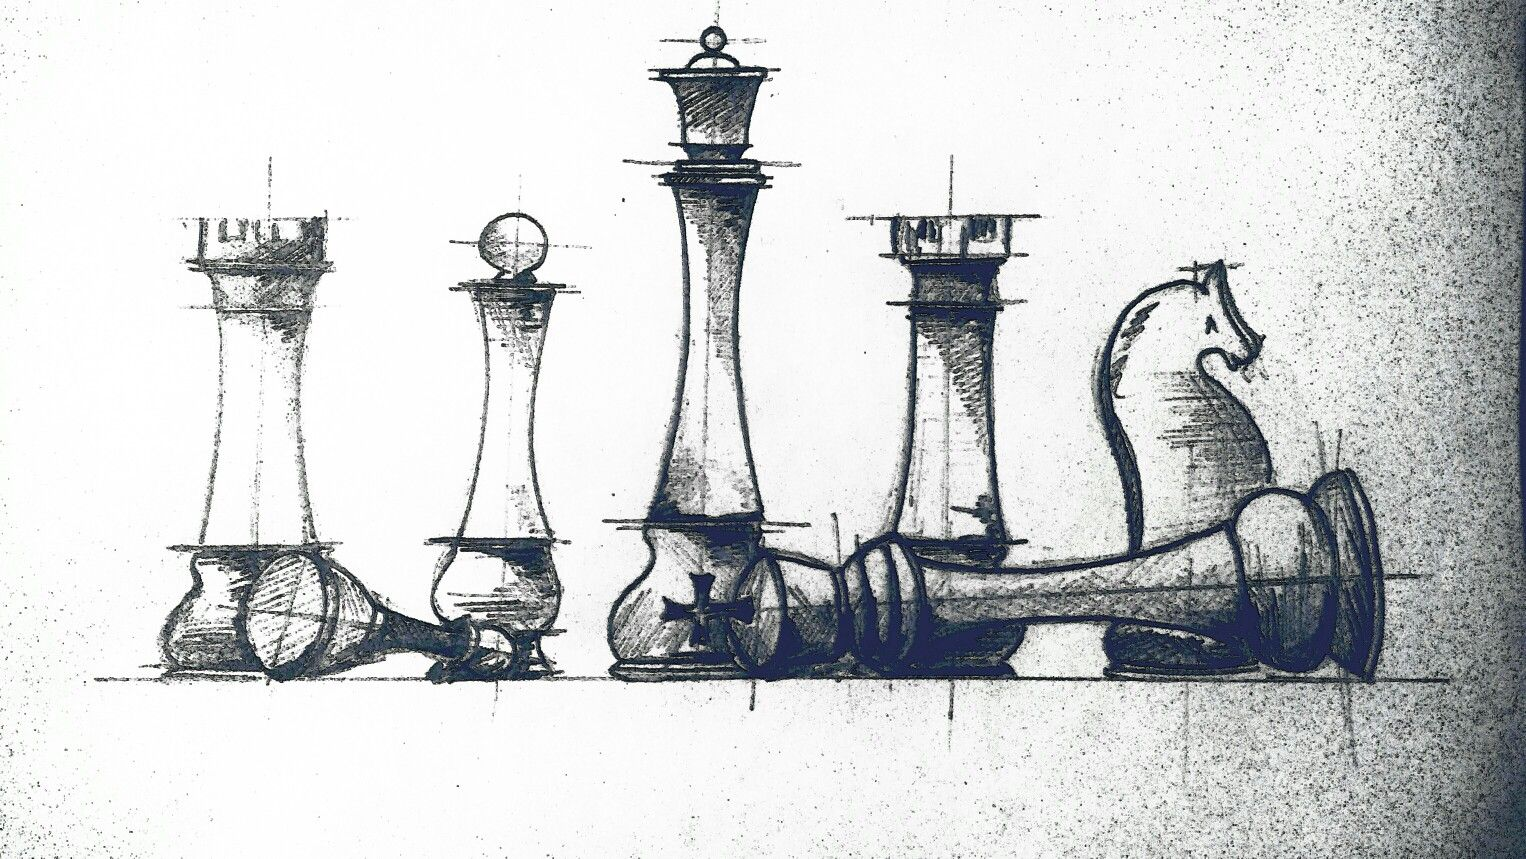 The game #king #queen #rook #chess #sketch | Sketches, Art